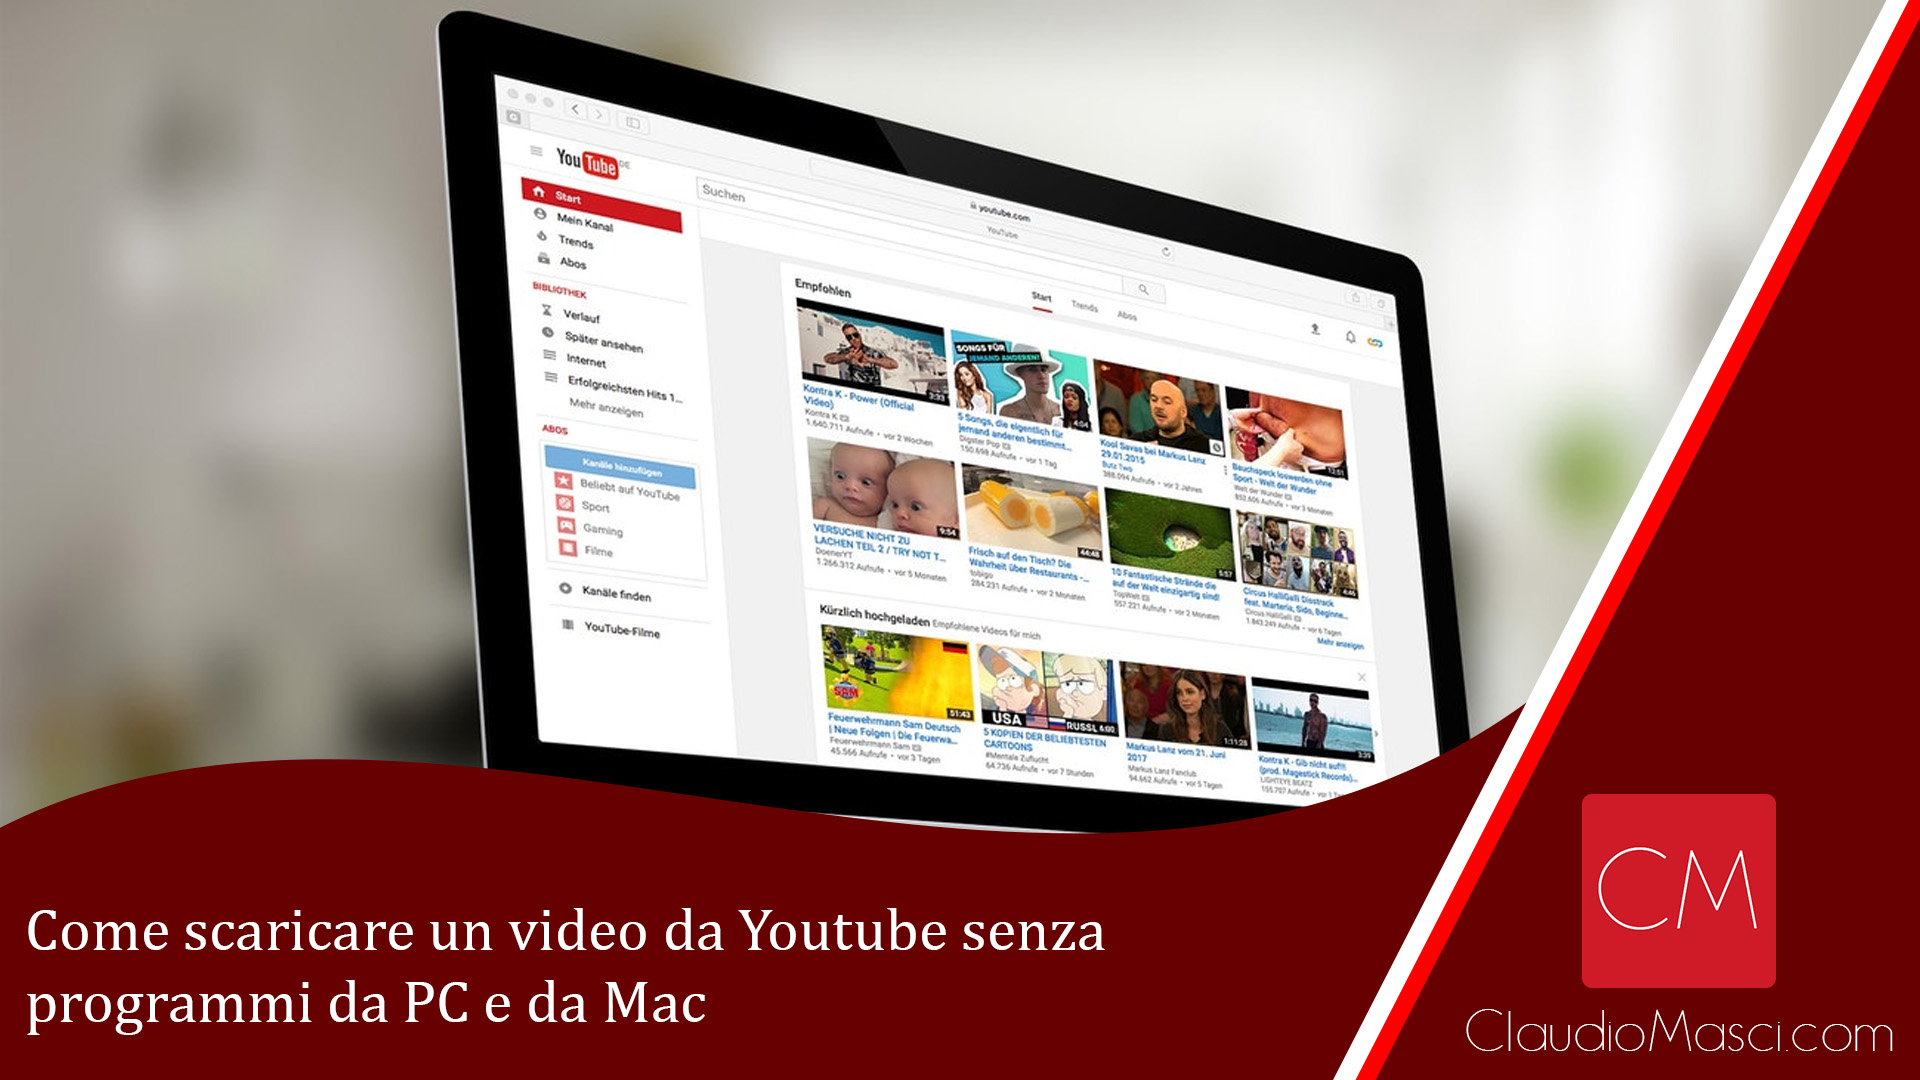 Come scaricare un video da Youtube senza programmi